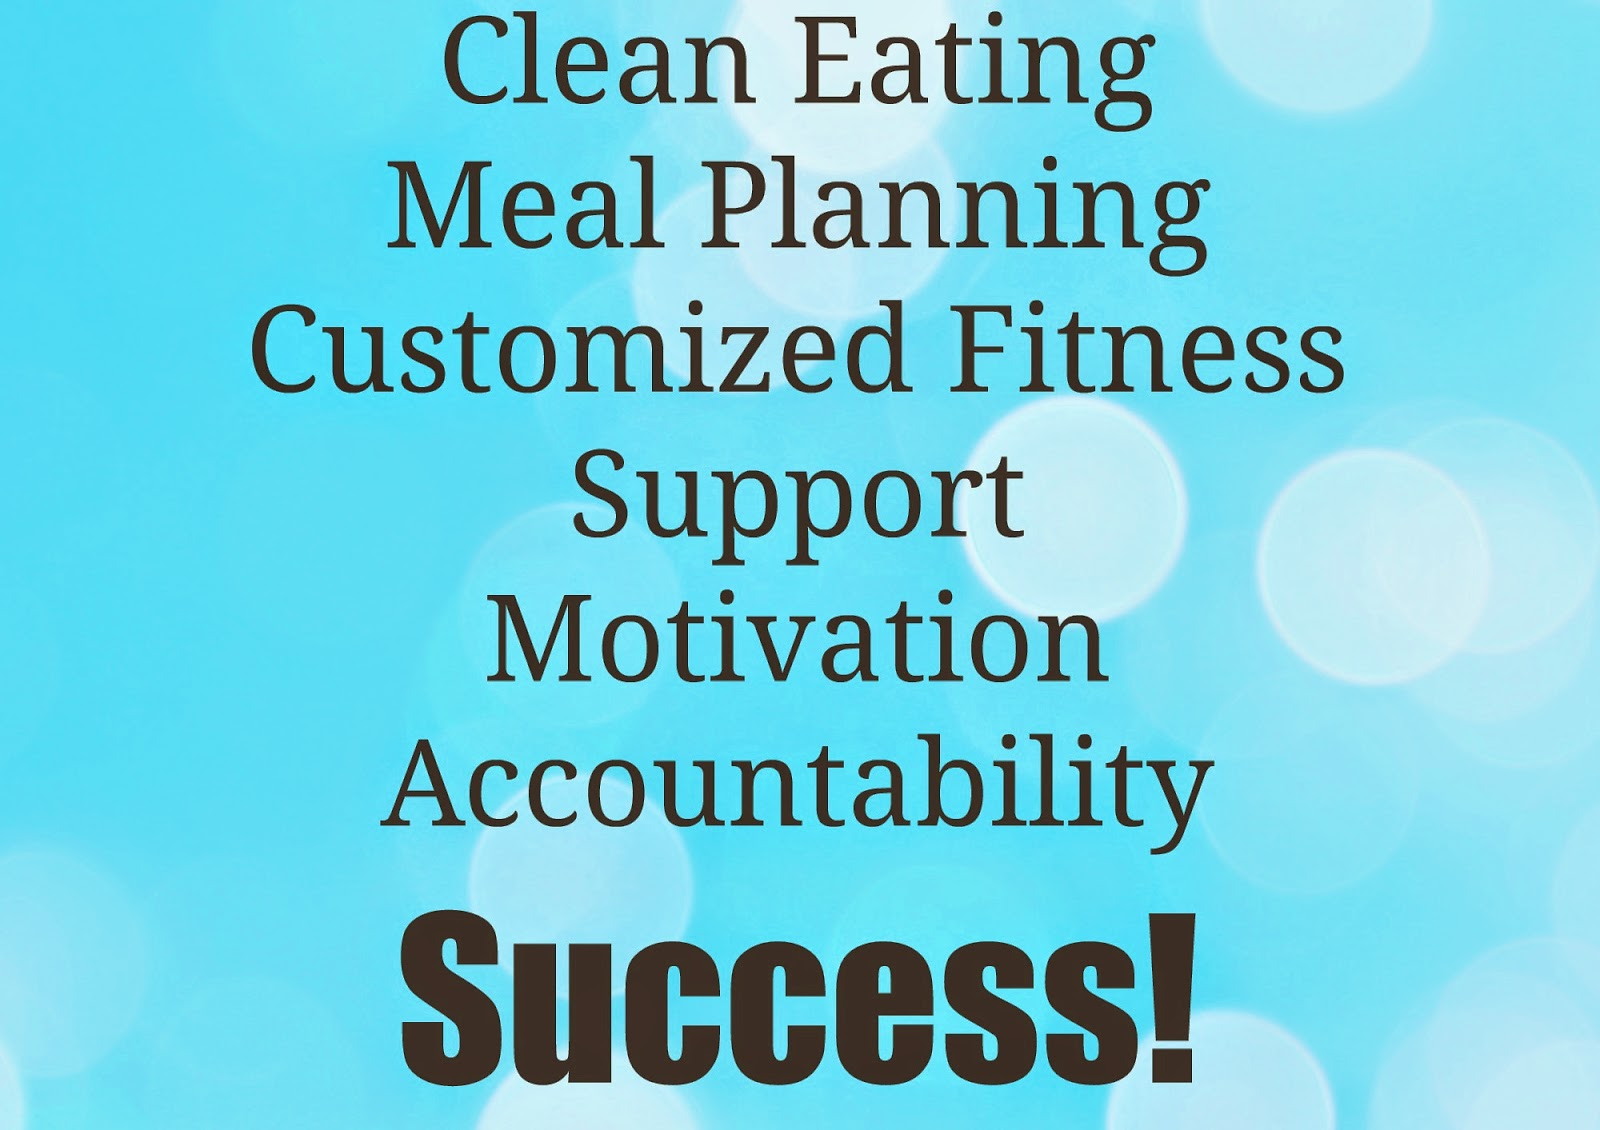 Vanessa McLaughlin, The Butterfly Effect, clean eating, challenge groups, accountability